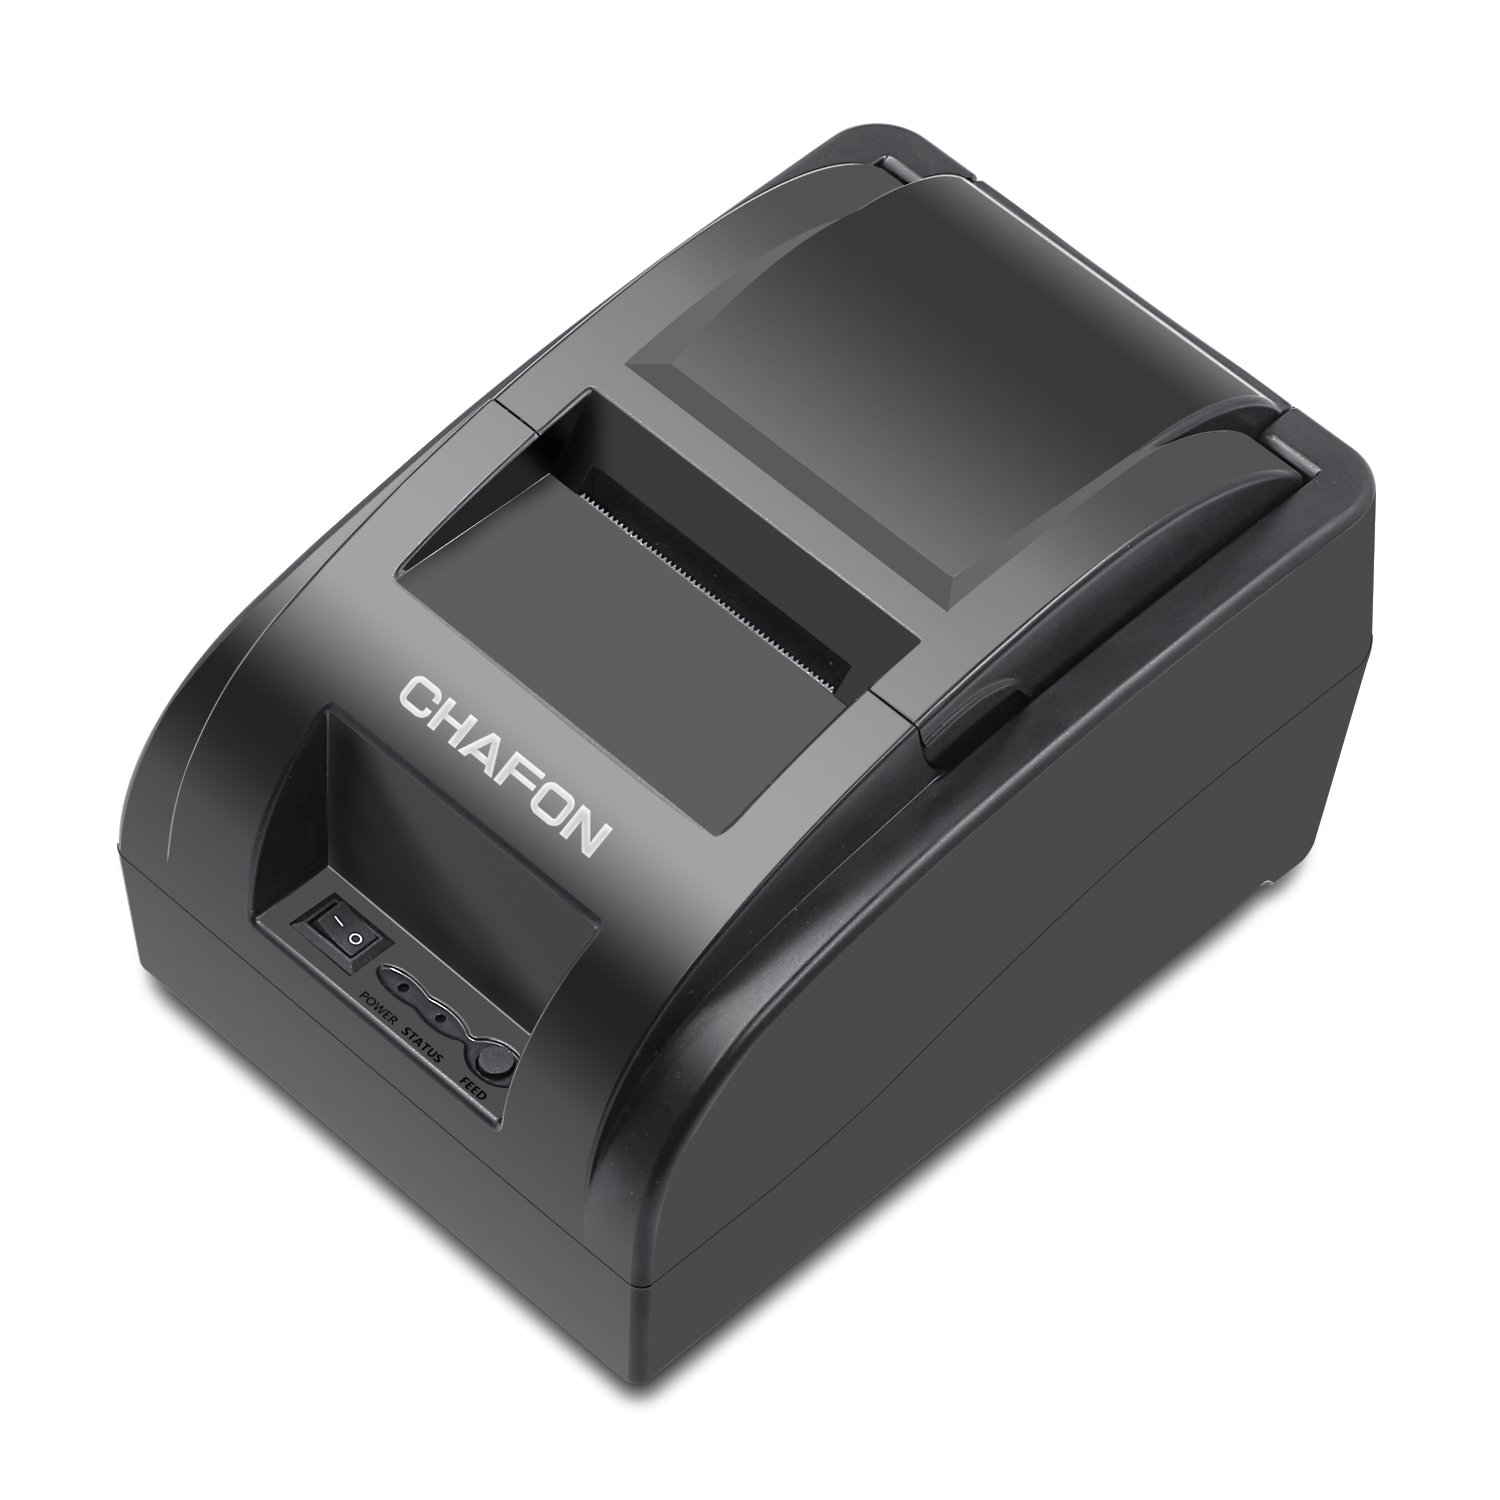 58MM USB Thermal Receipt Printer, Chafon Portable Printer High Speed Printing Compatible ESC/POS Print Commands Set Retail Store, Small Business, Restaurant, Canteen More